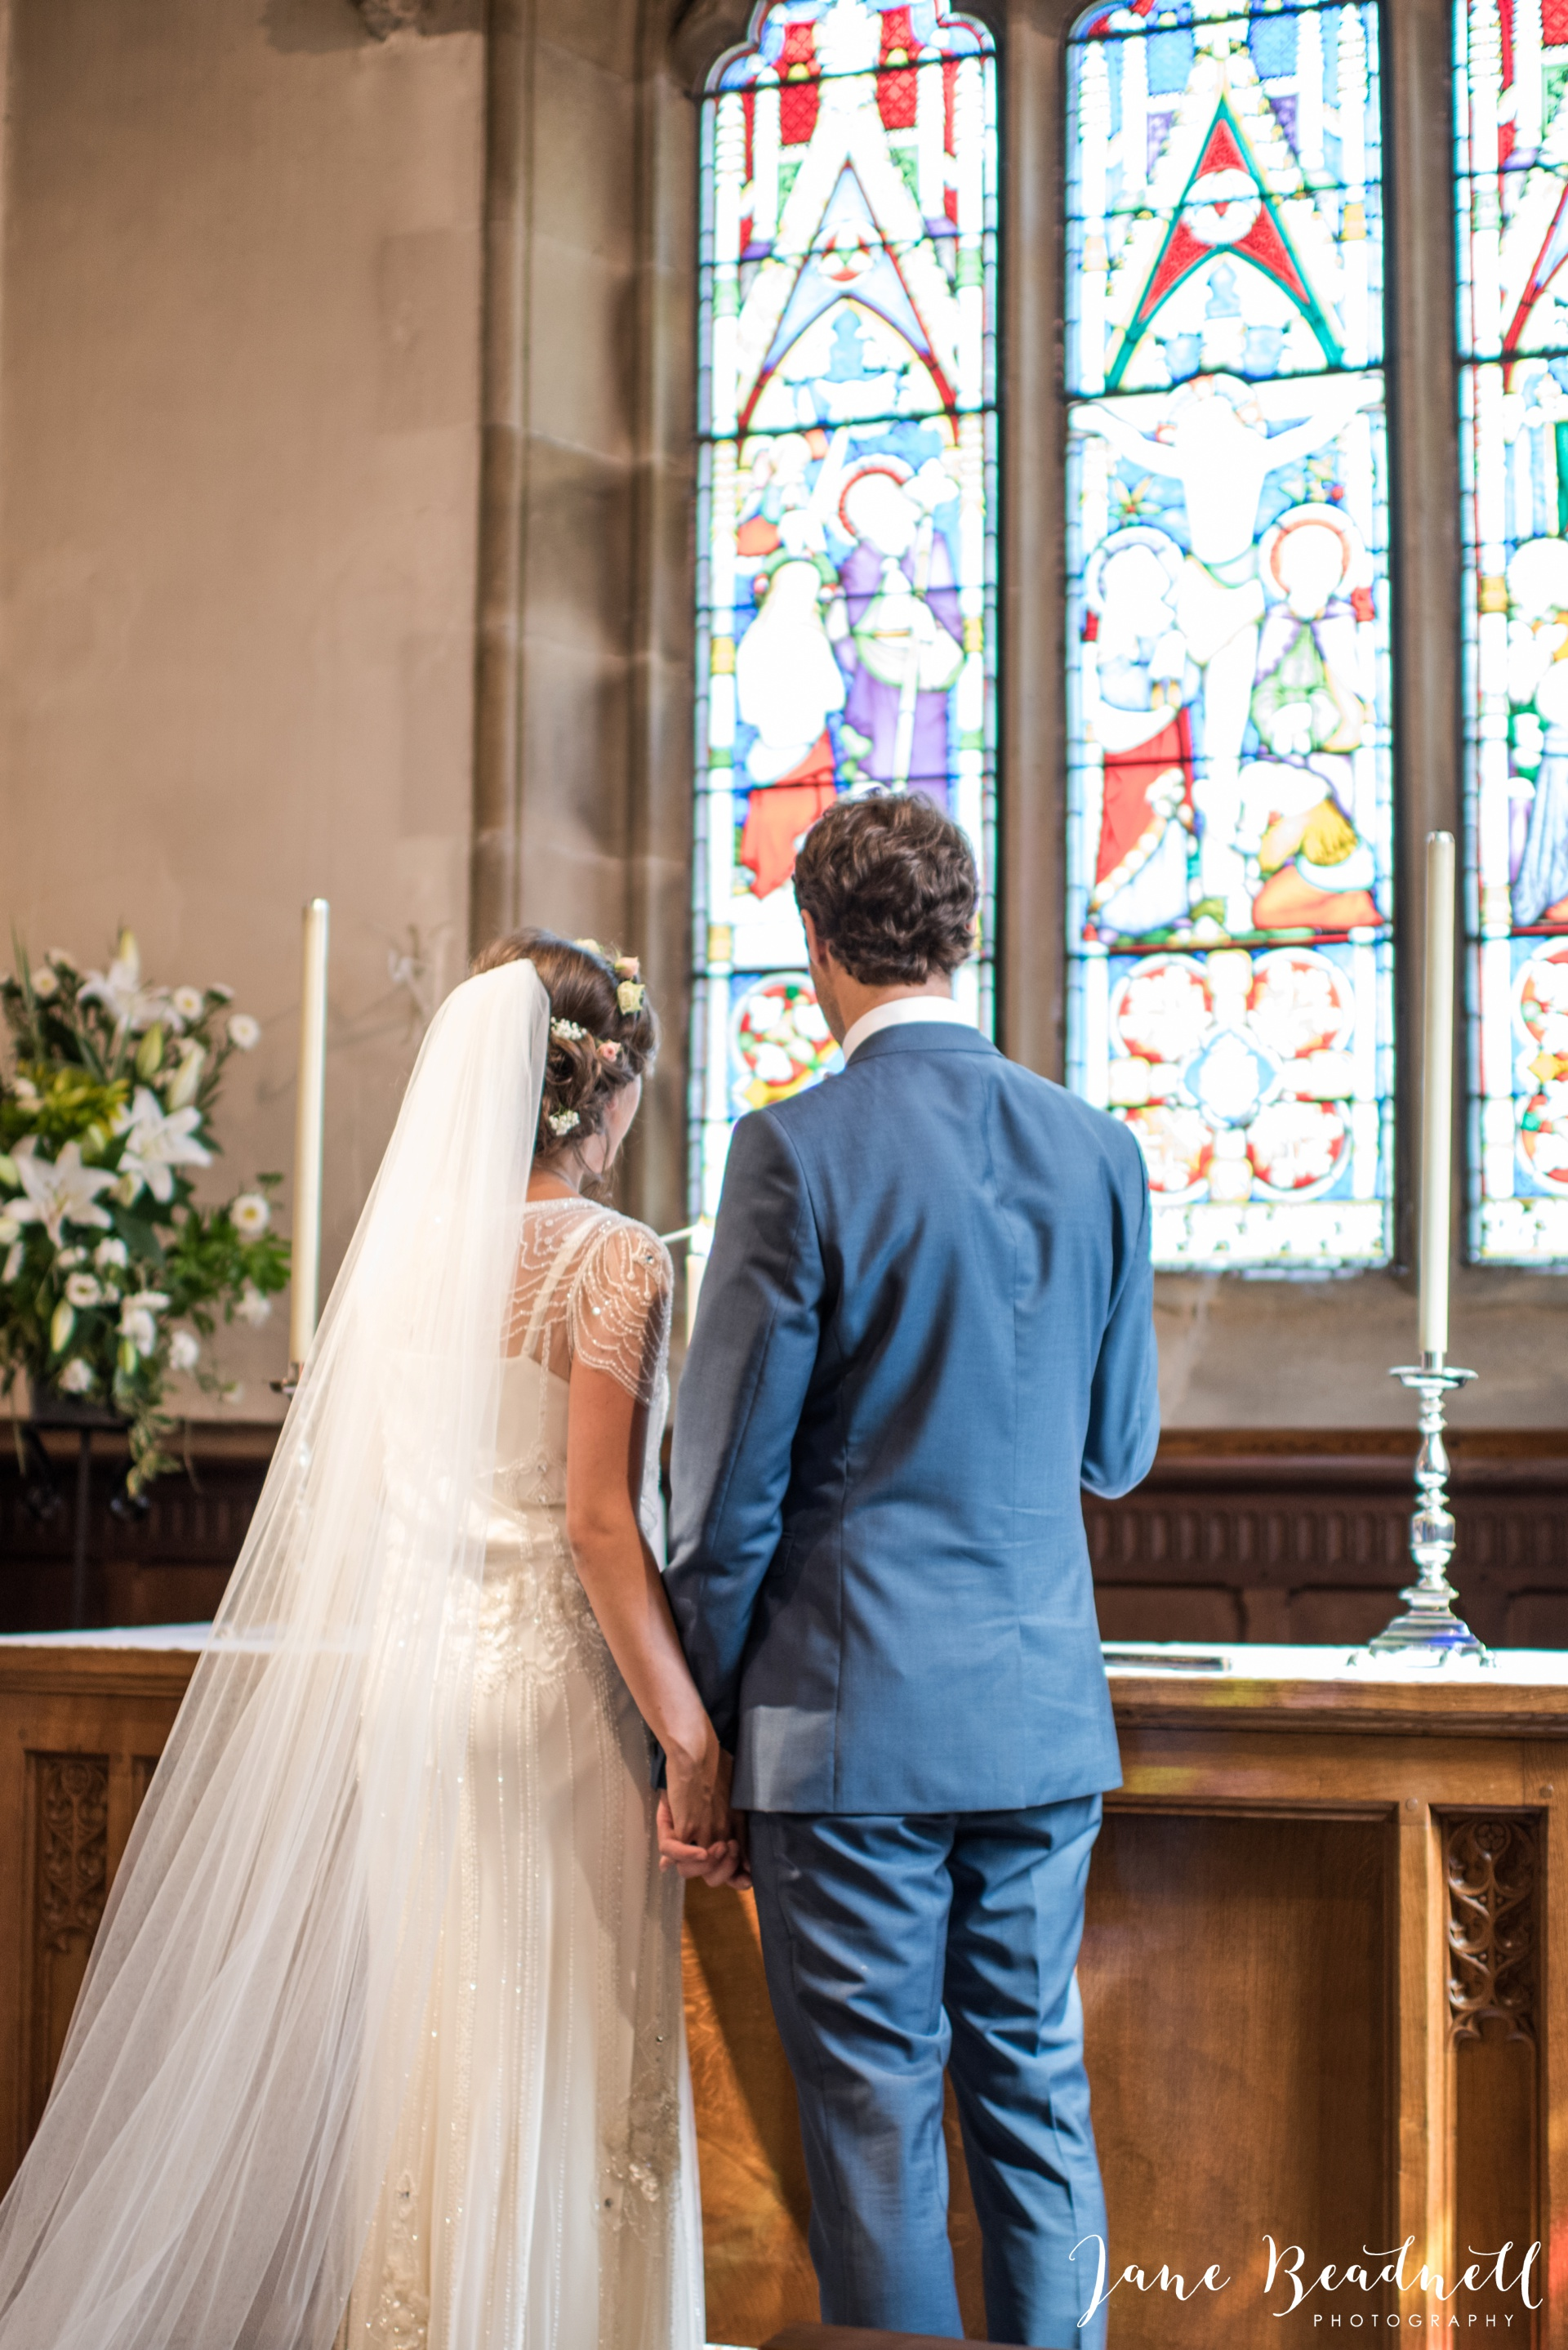 Jane Beadnell fine art wedding photographer Leeds_0047